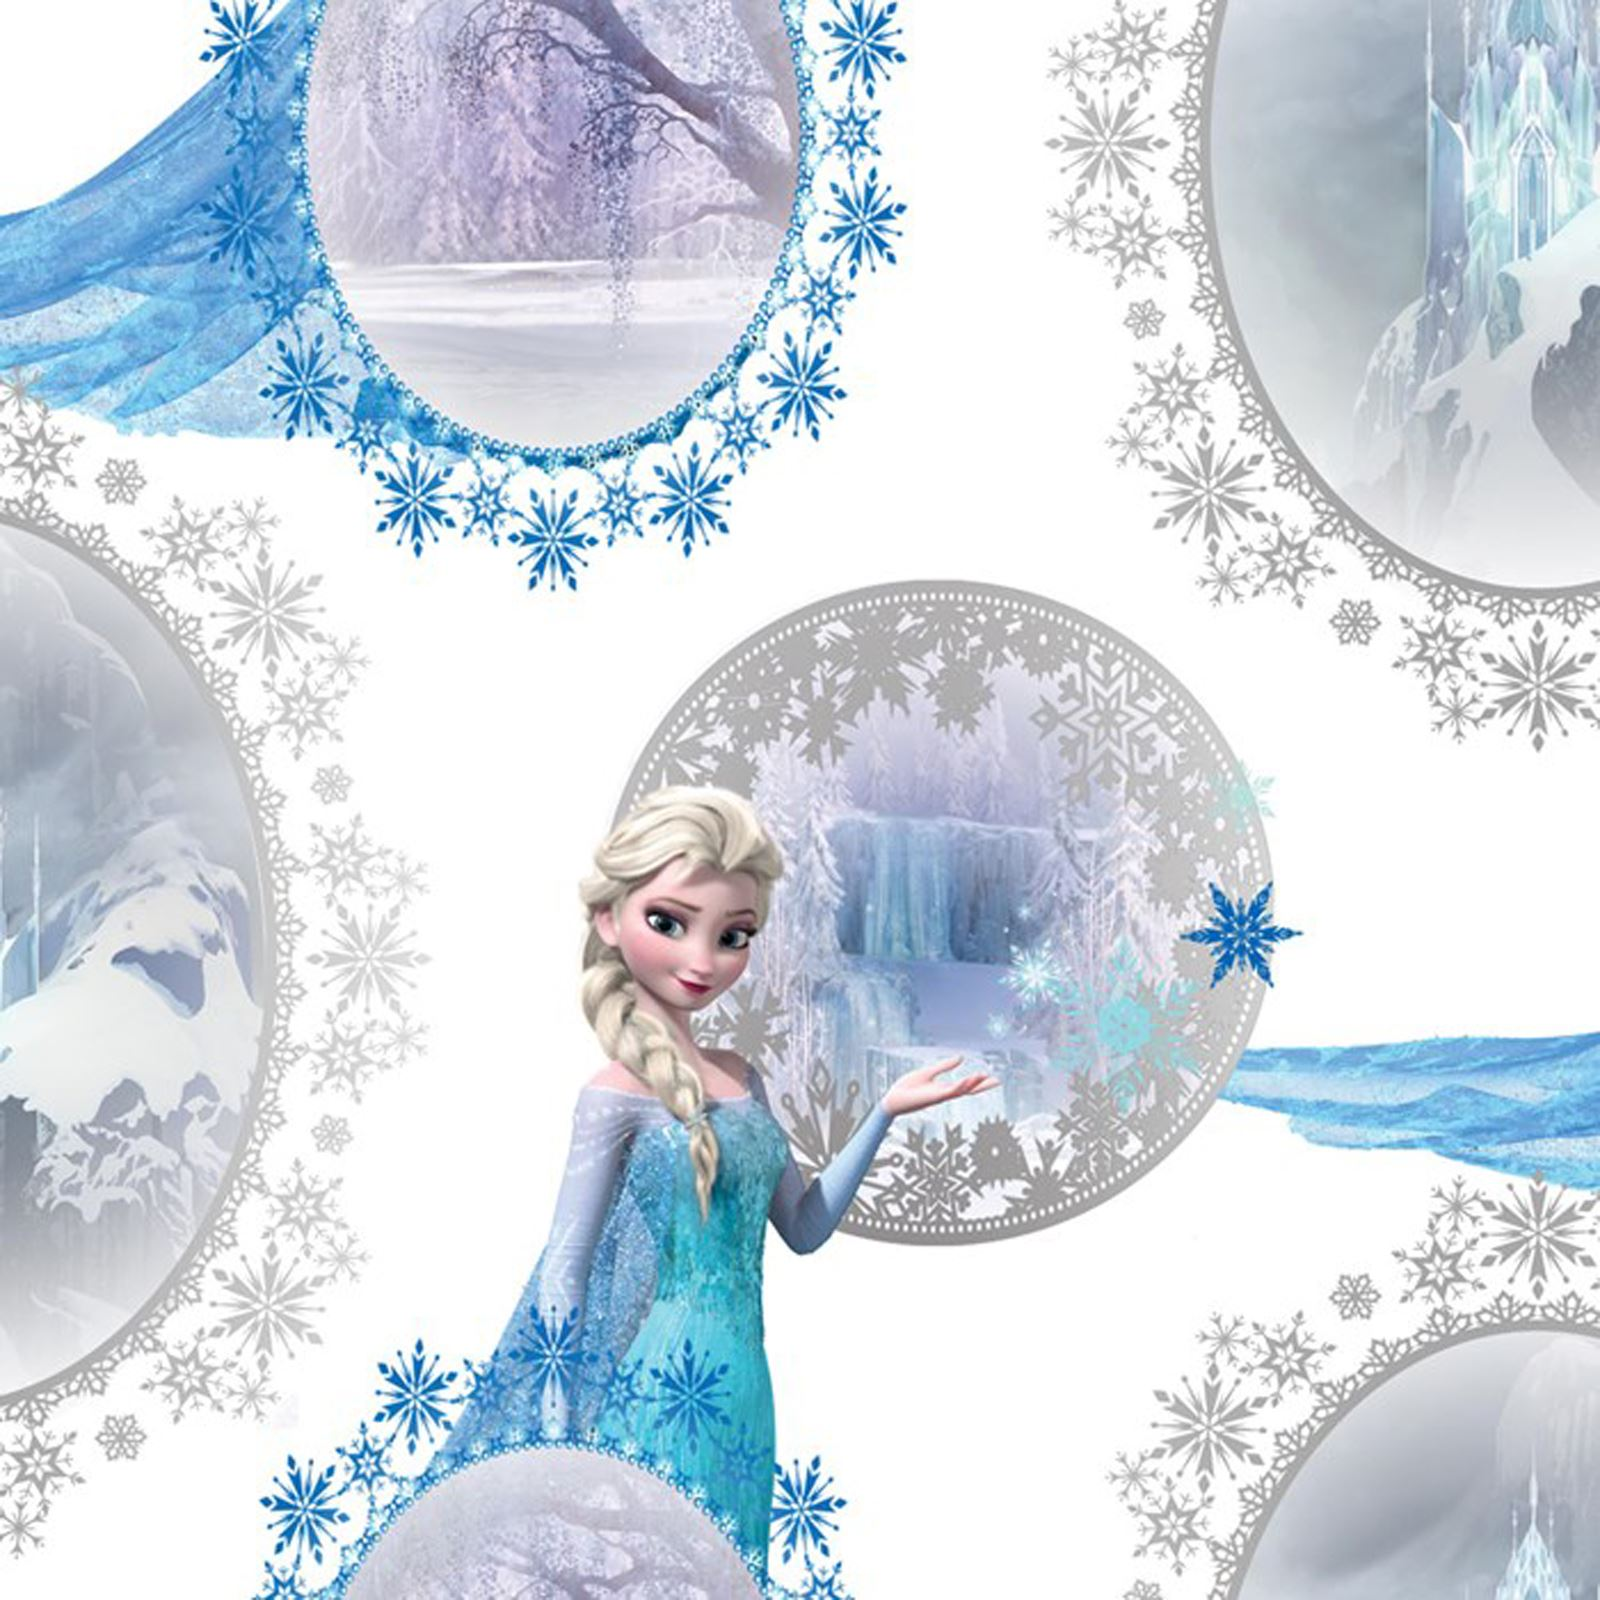 Disney frozen wallpaper borders and wall stickers wall dcor ebay disney frozen wallpaper borders and wall stickers wall dcor amipublicfo Choice Image